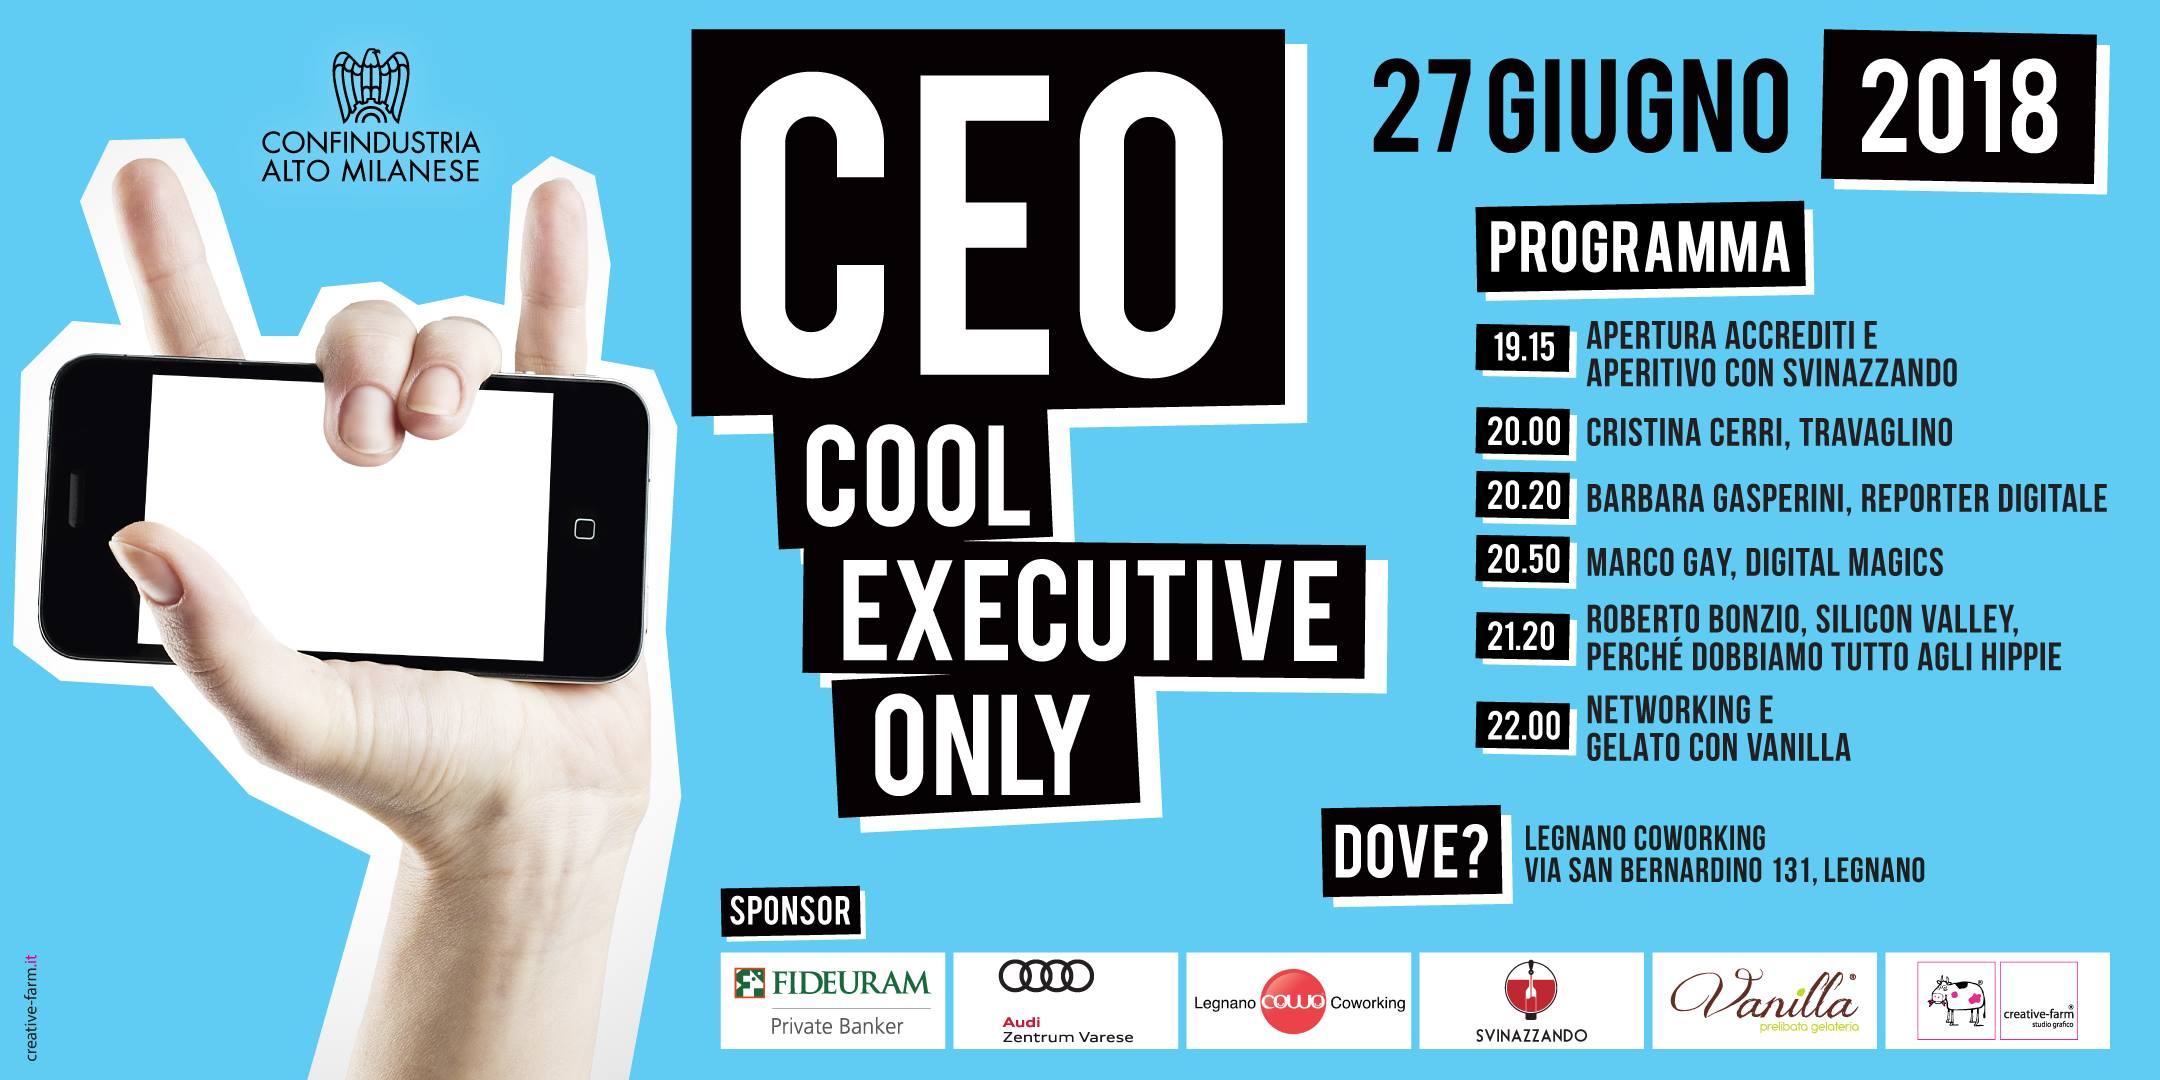 CEO Cool Executive Only a Legnano